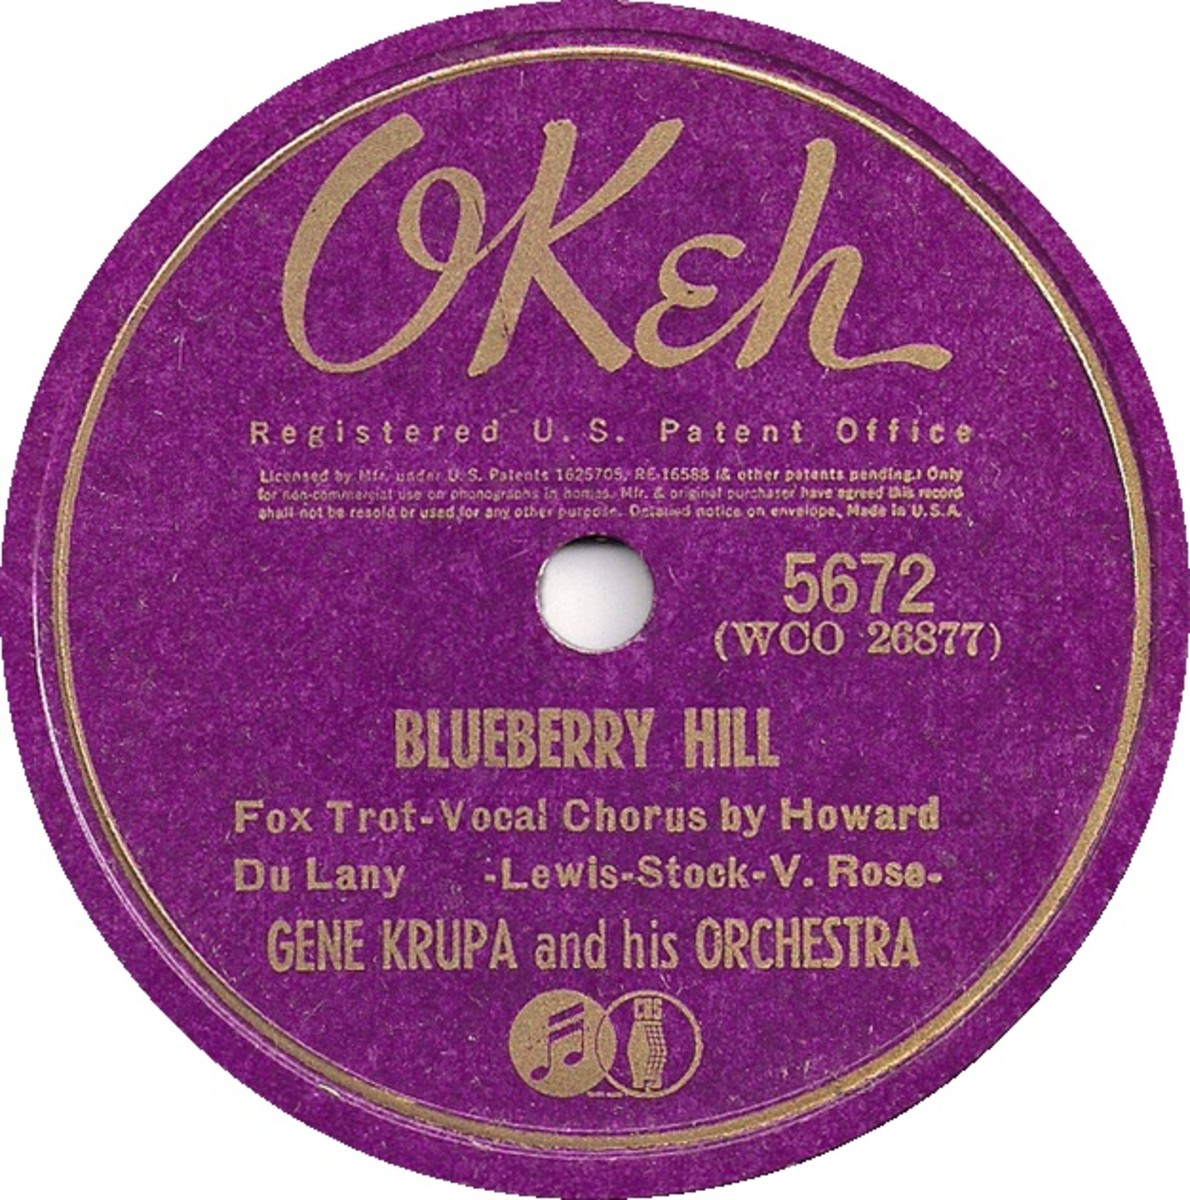 Gene Krupa LP of Blueberry Hill